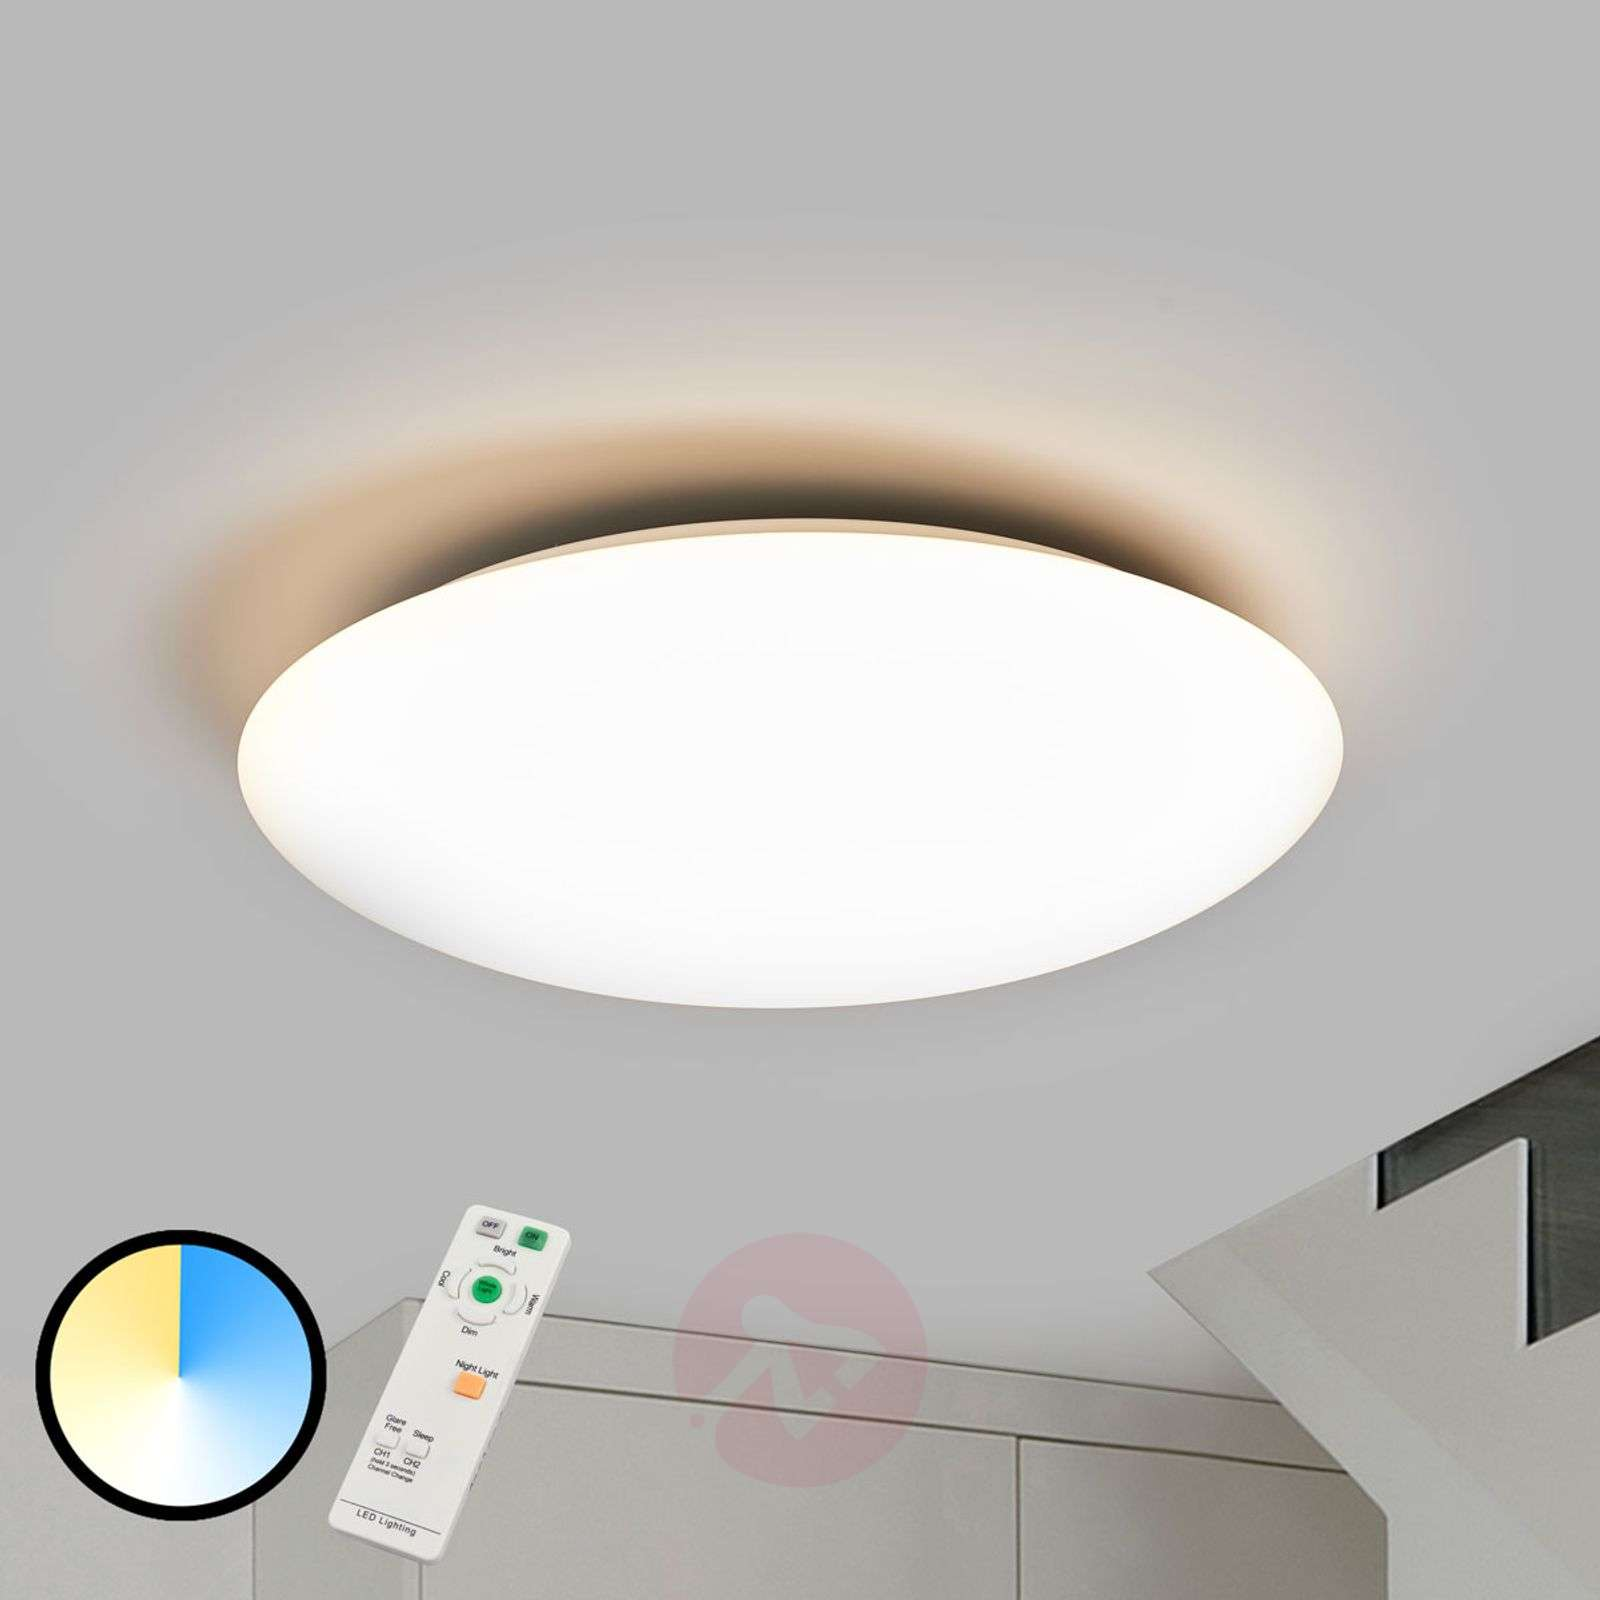 Plafoniere Industriali Diametro 30 : Acquista plafoniera dimmerabile led teo con telecomando lampade.it